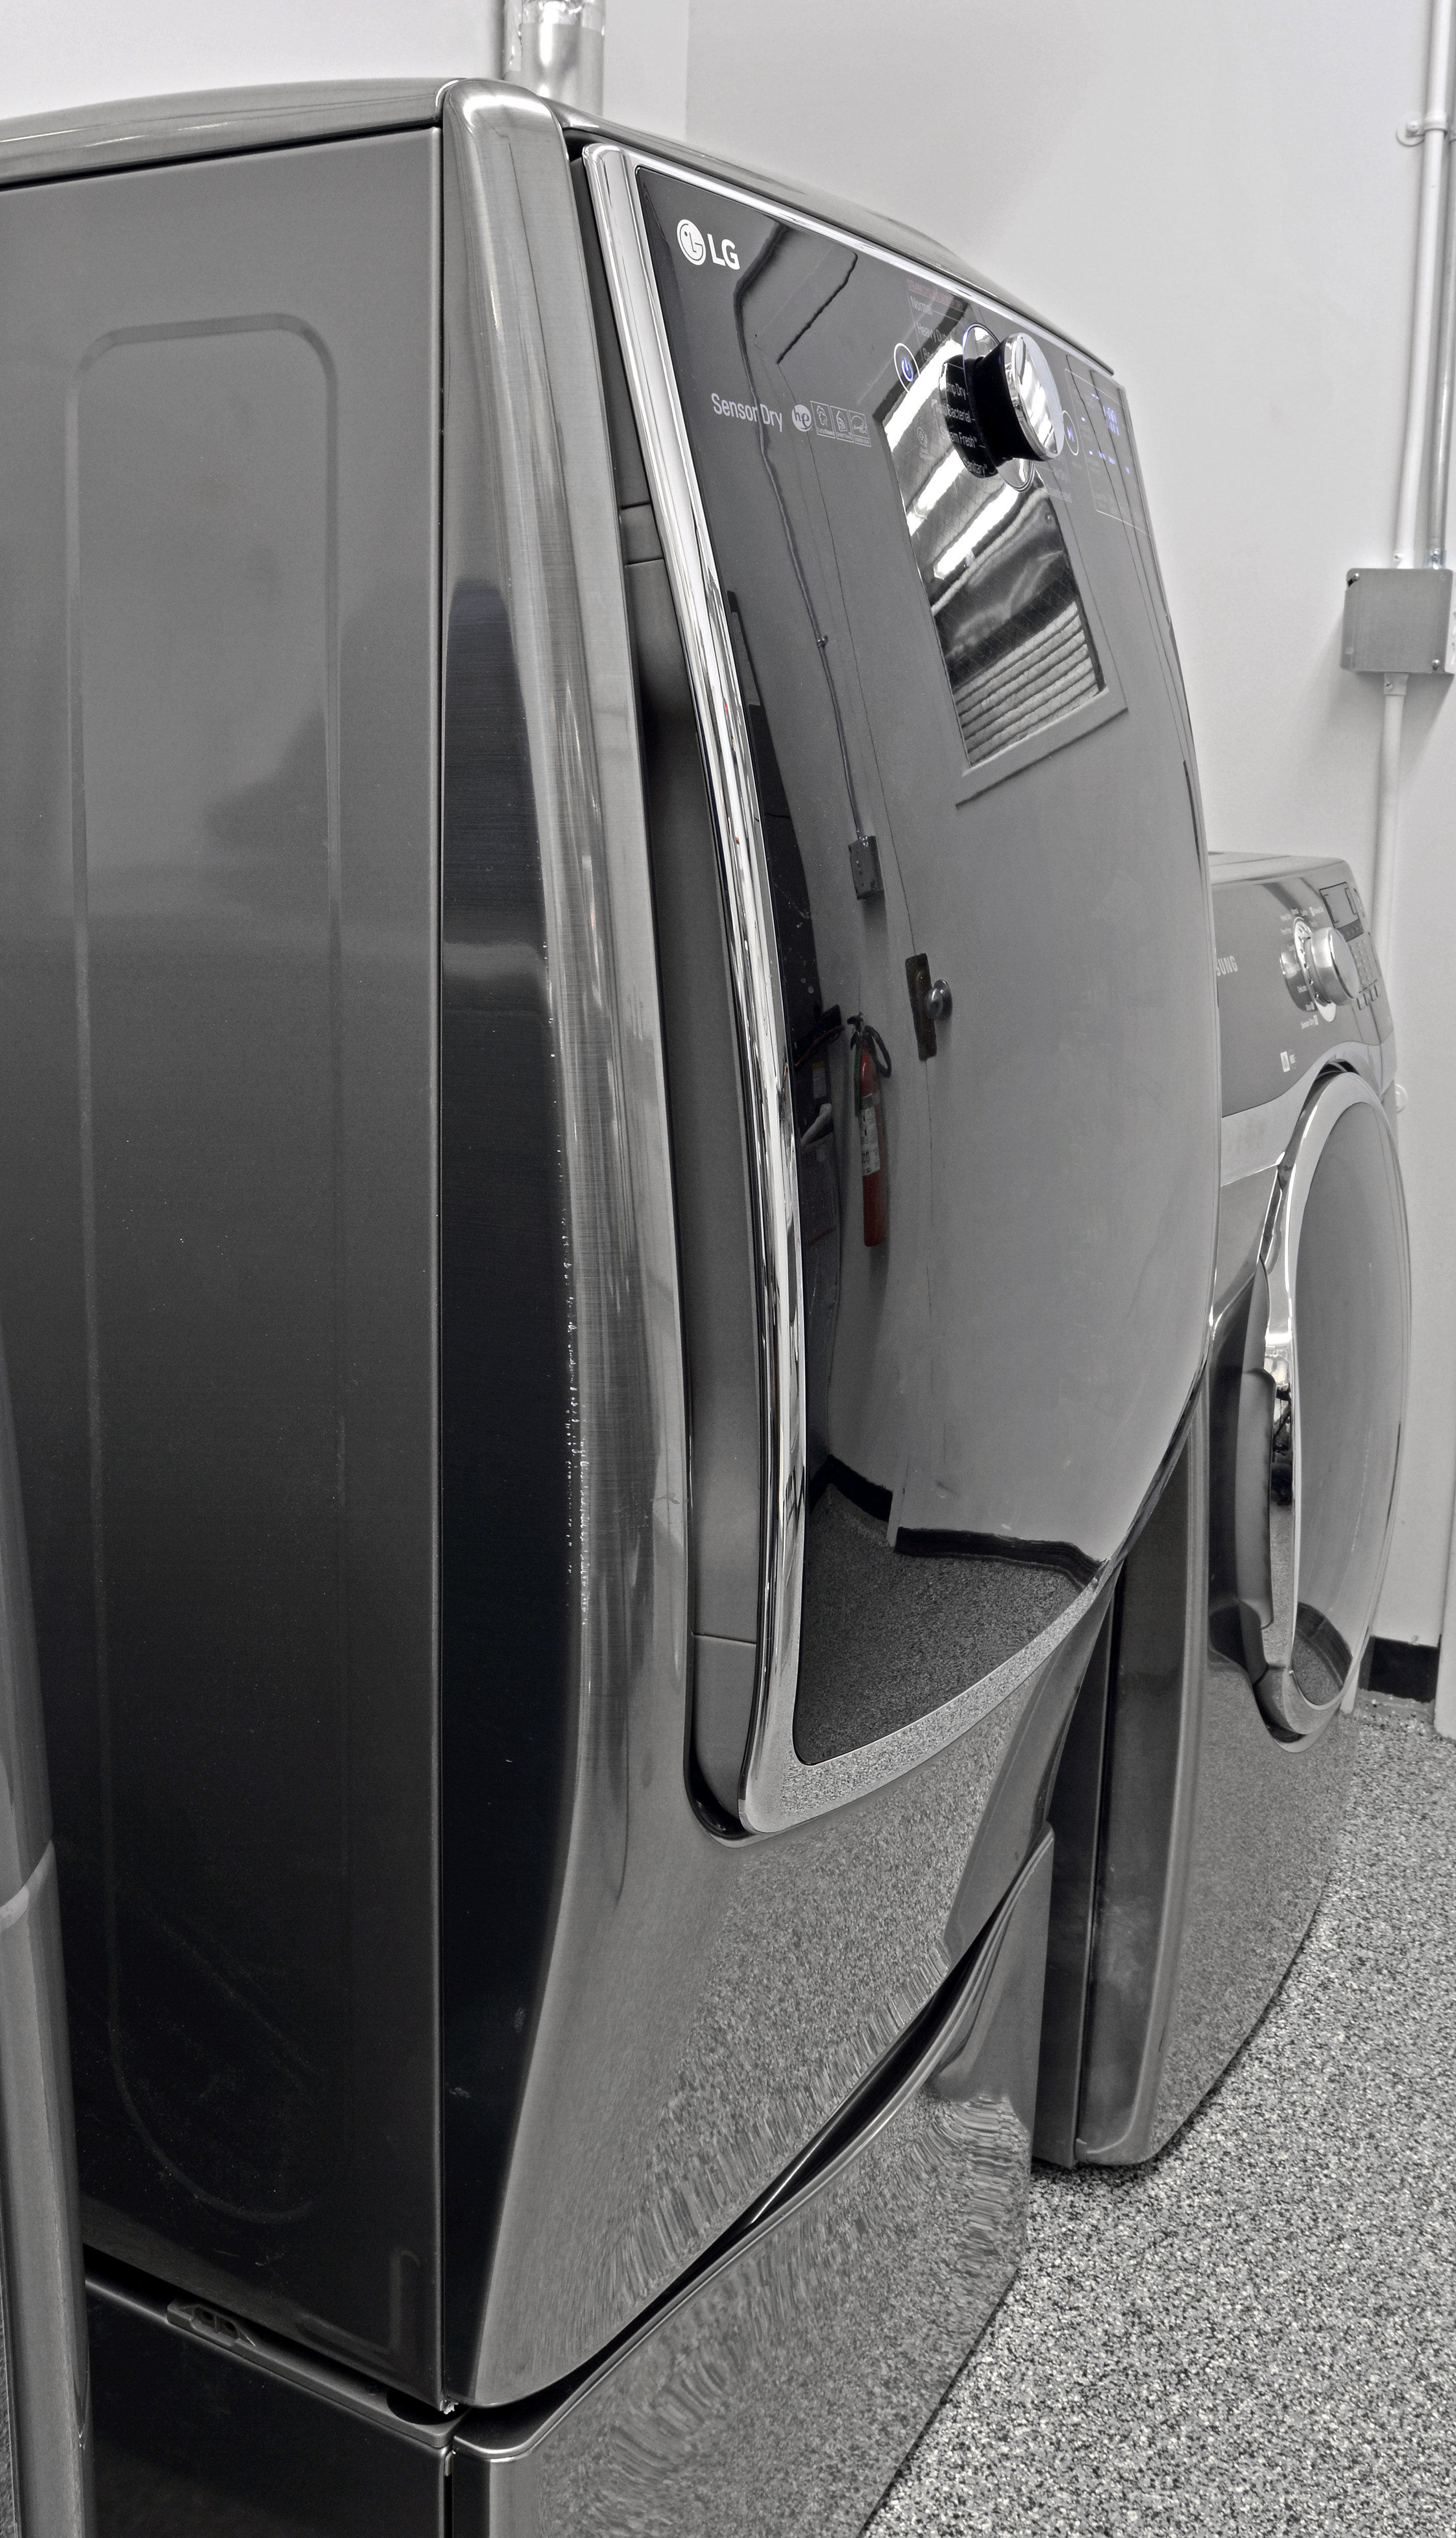 The curved door and slightly bulging design means the LG DLEX5000V cannot be stacked with its matching washer.